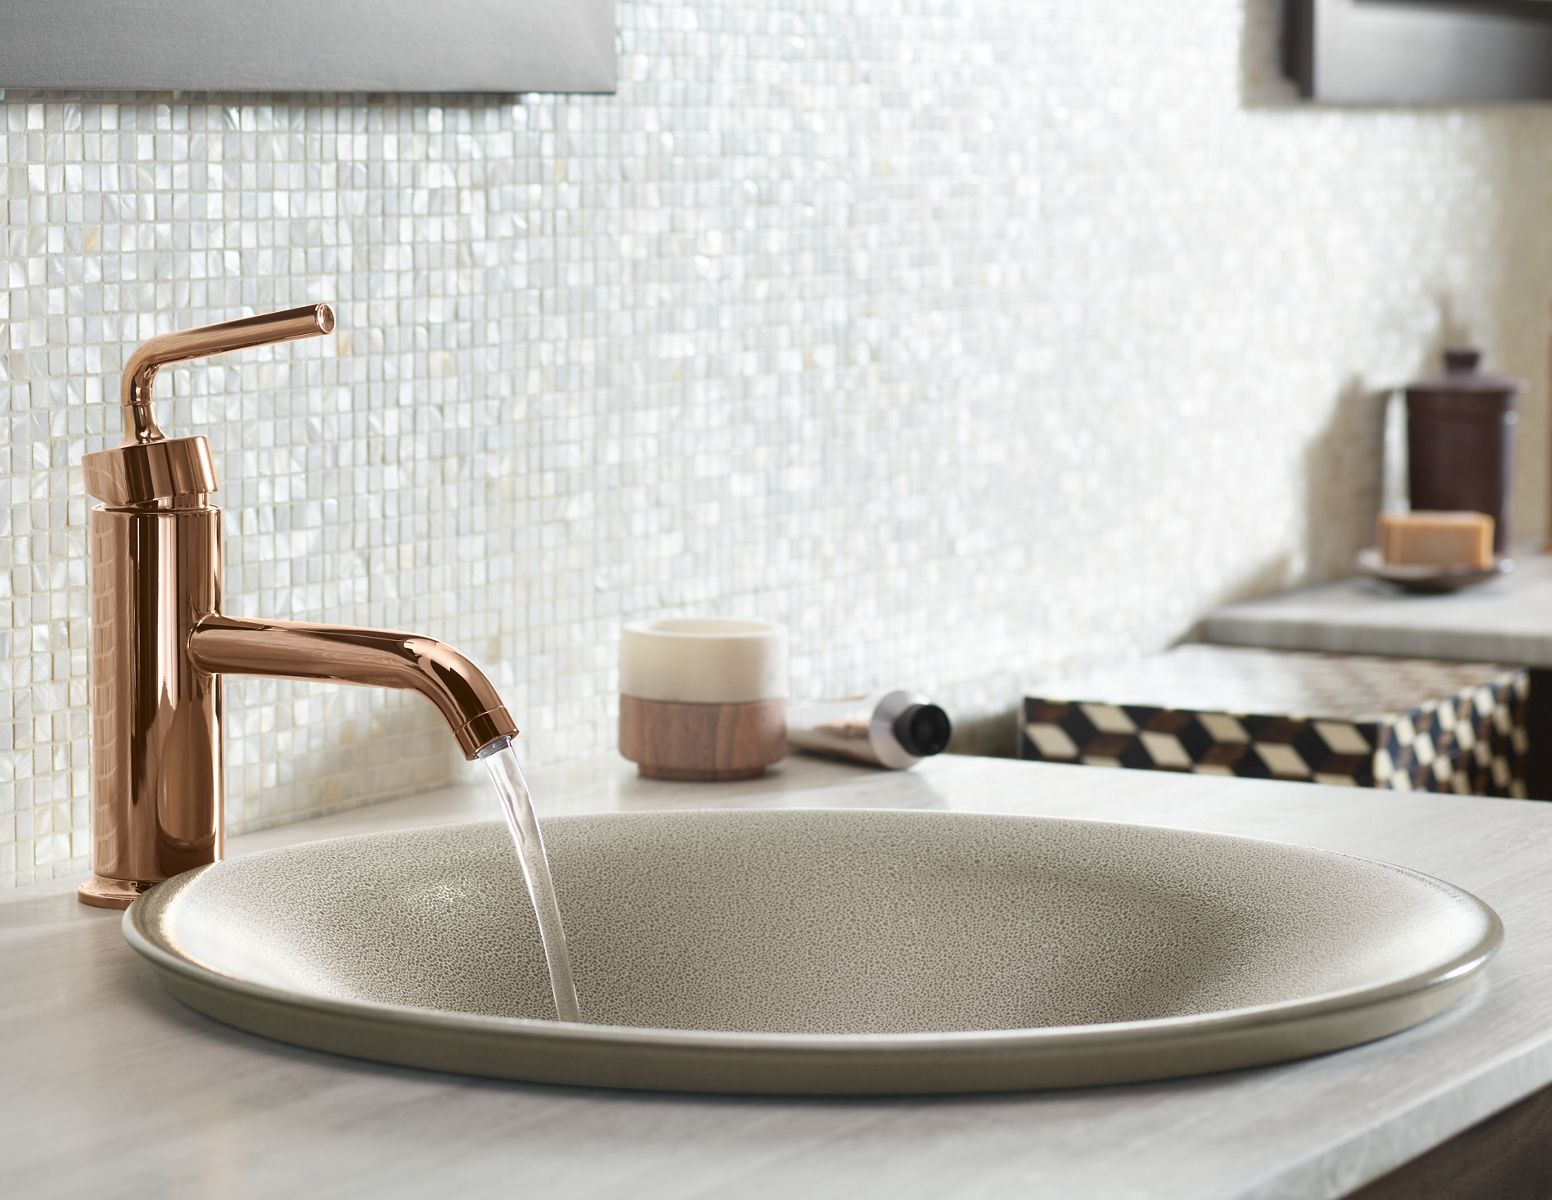 Bathroom Faucets In Gold Tone kohler | toilets, showers, sinks, faucets and more for bathroom